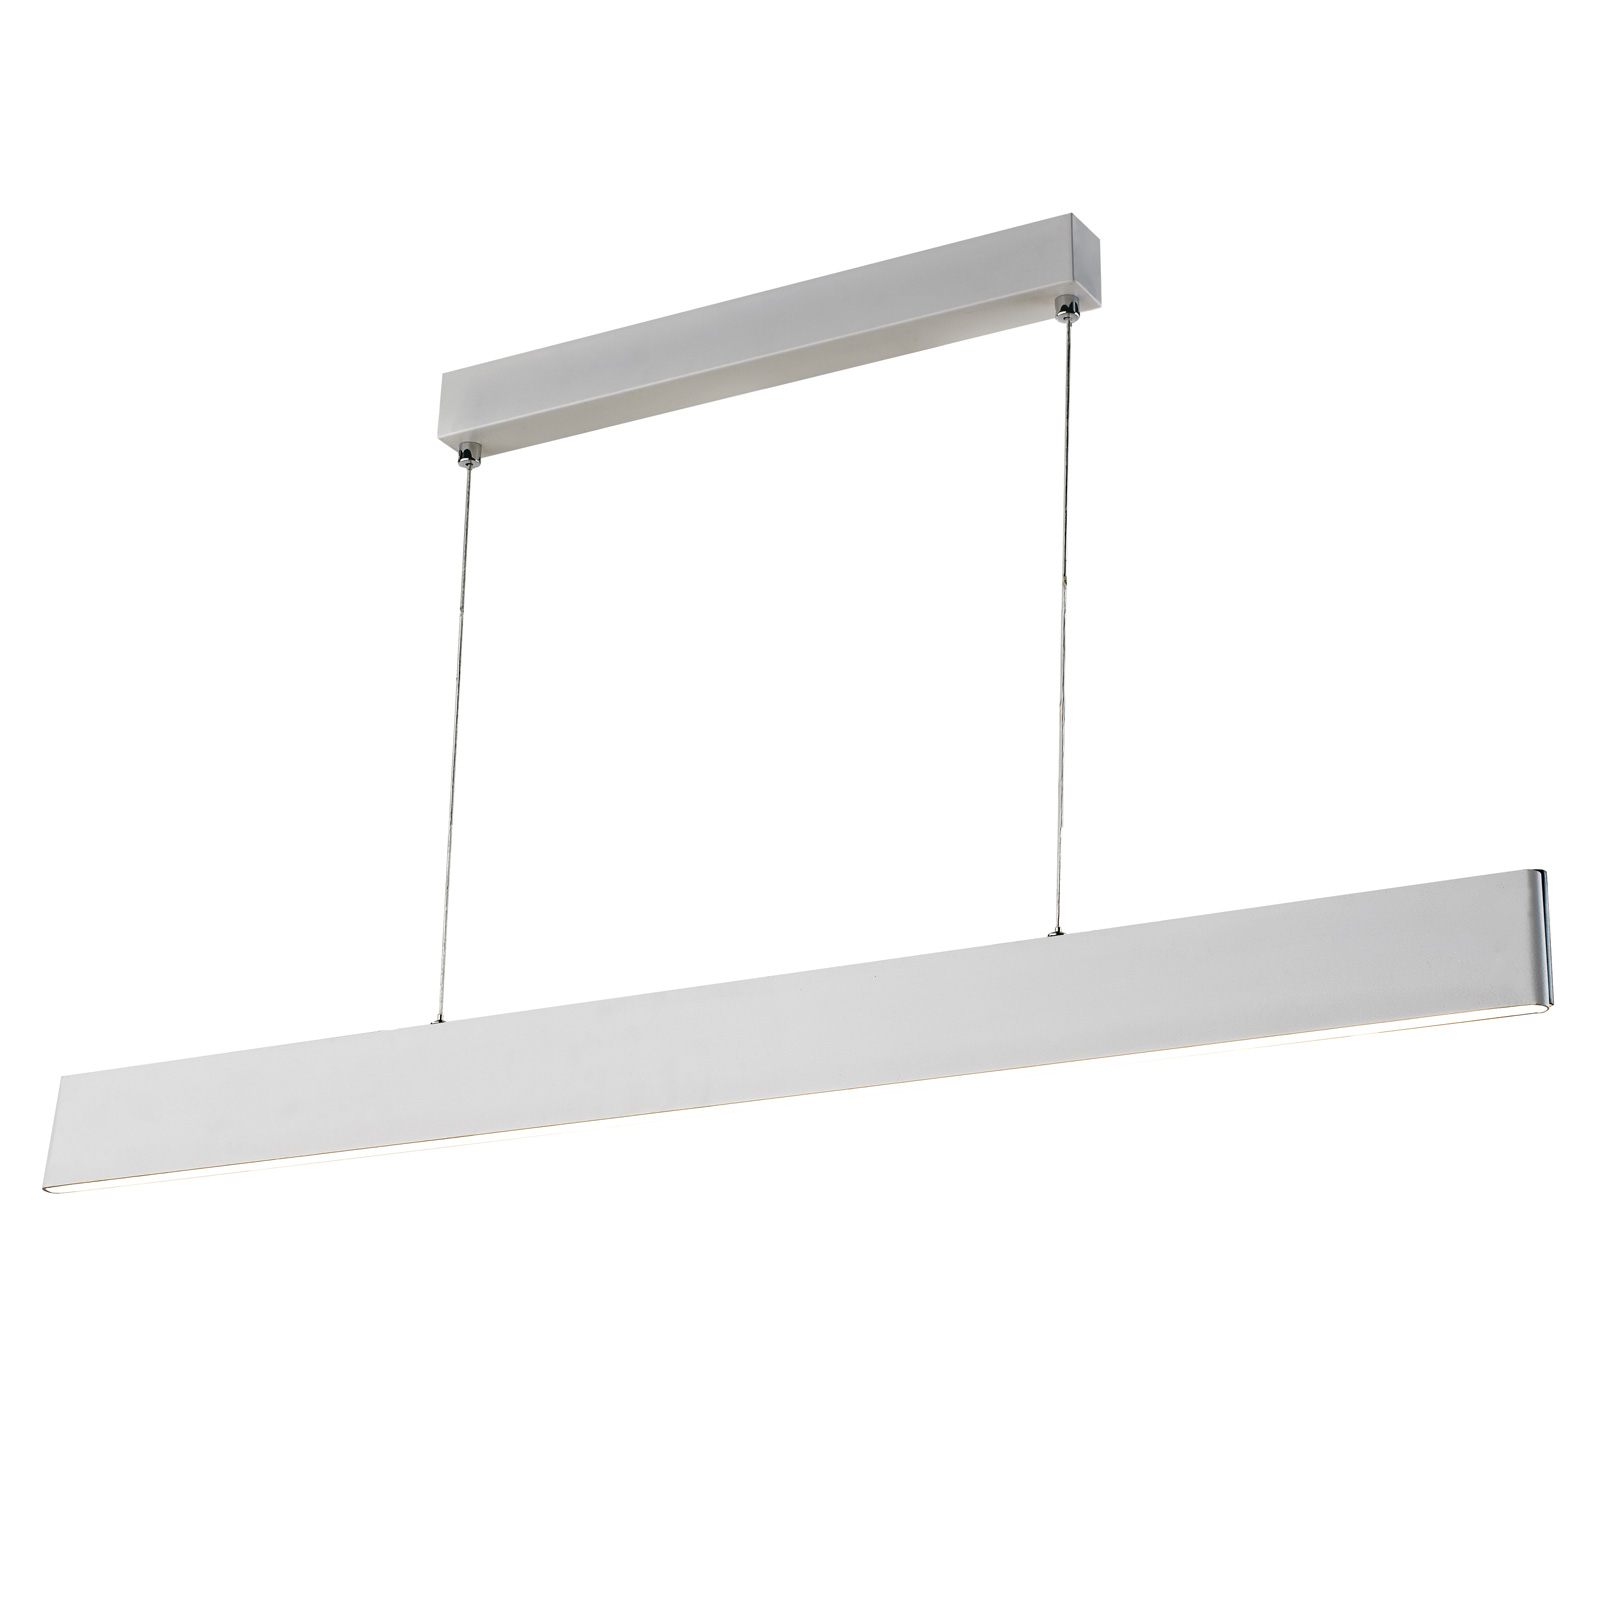 Suspension LED Sileas, 122 cm, blanche, dimmable